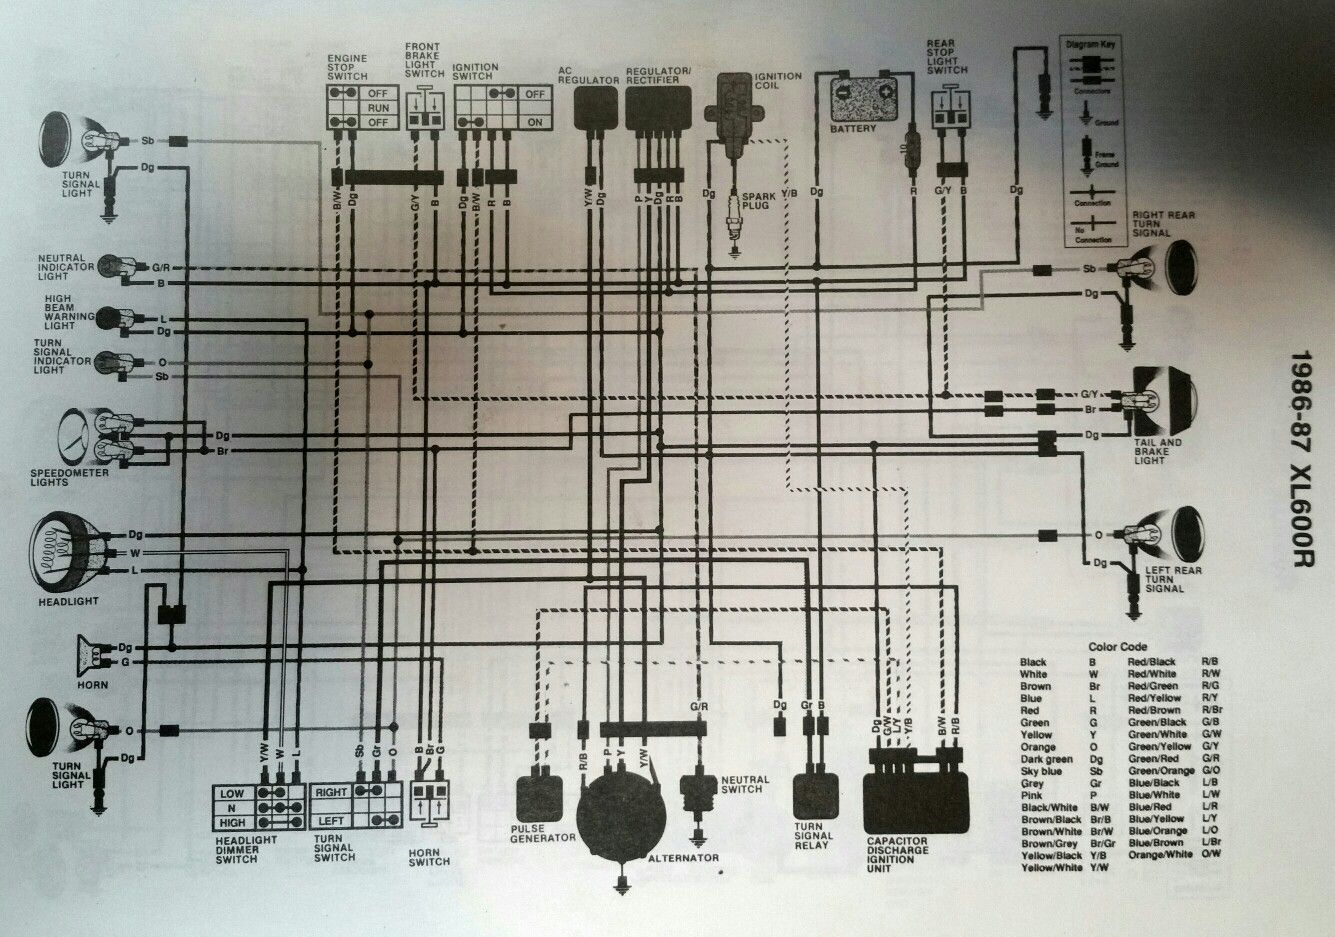 Wiring Diagram For 1986 Honda Xl 600 R   Xl600r